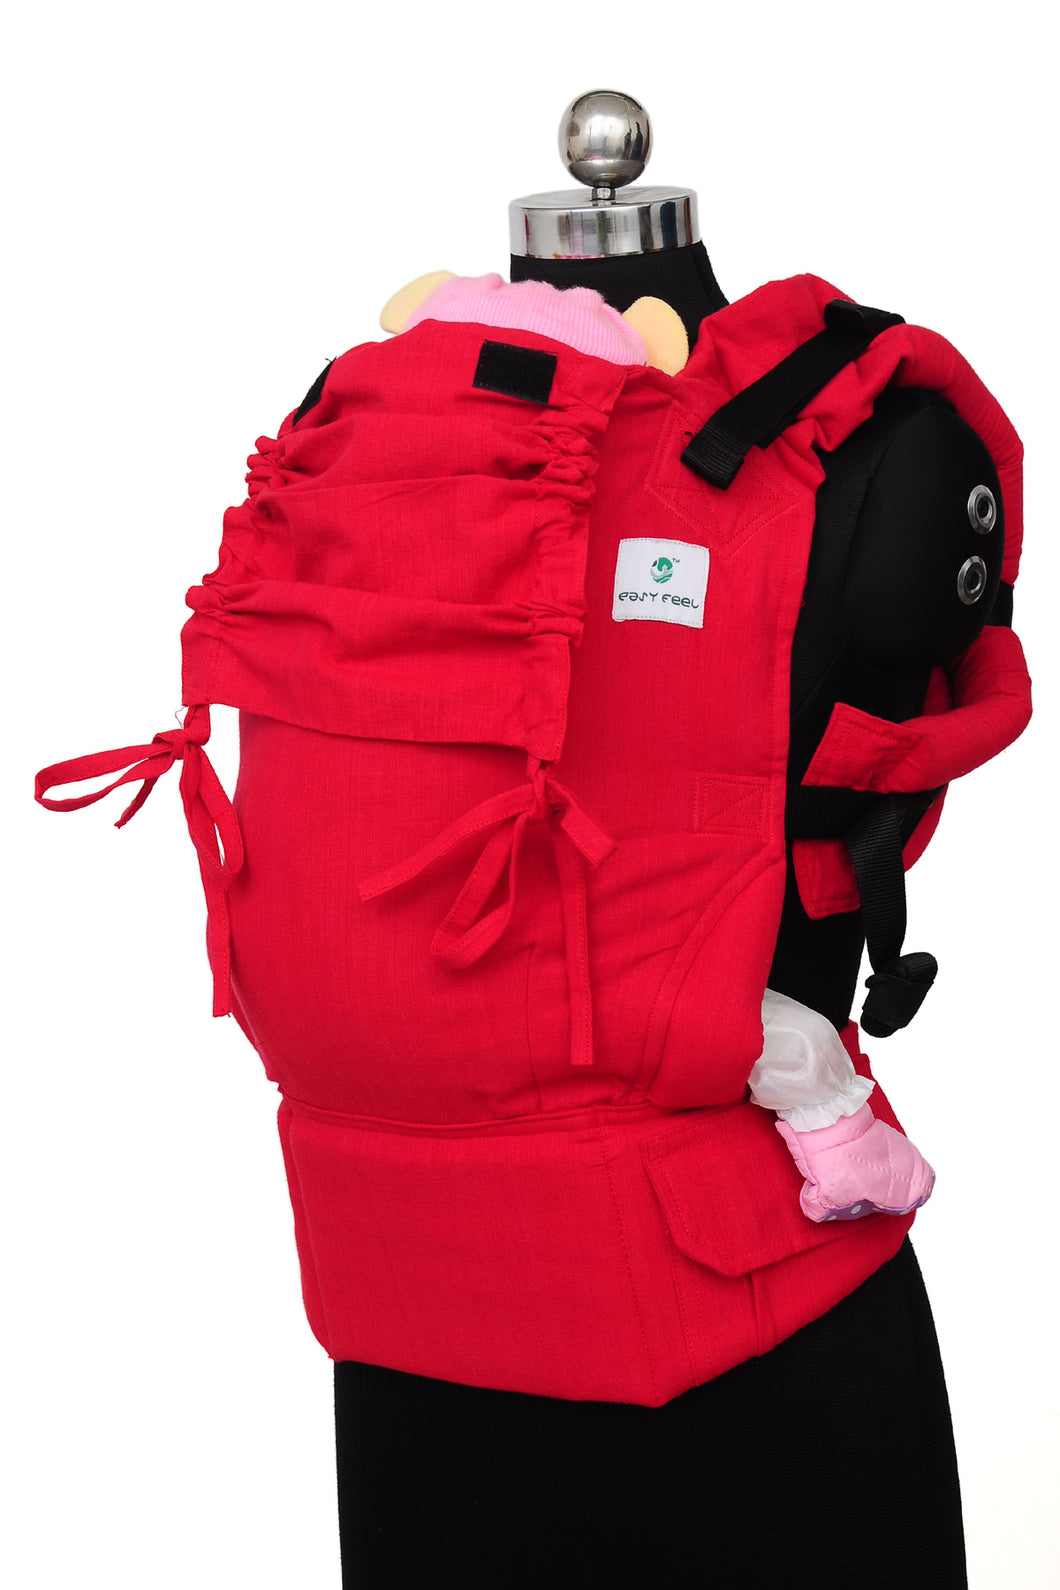 Easy Feel Full Buckle Ergonomic Soft Structured Carrier (Preschool Size) - Vermilion